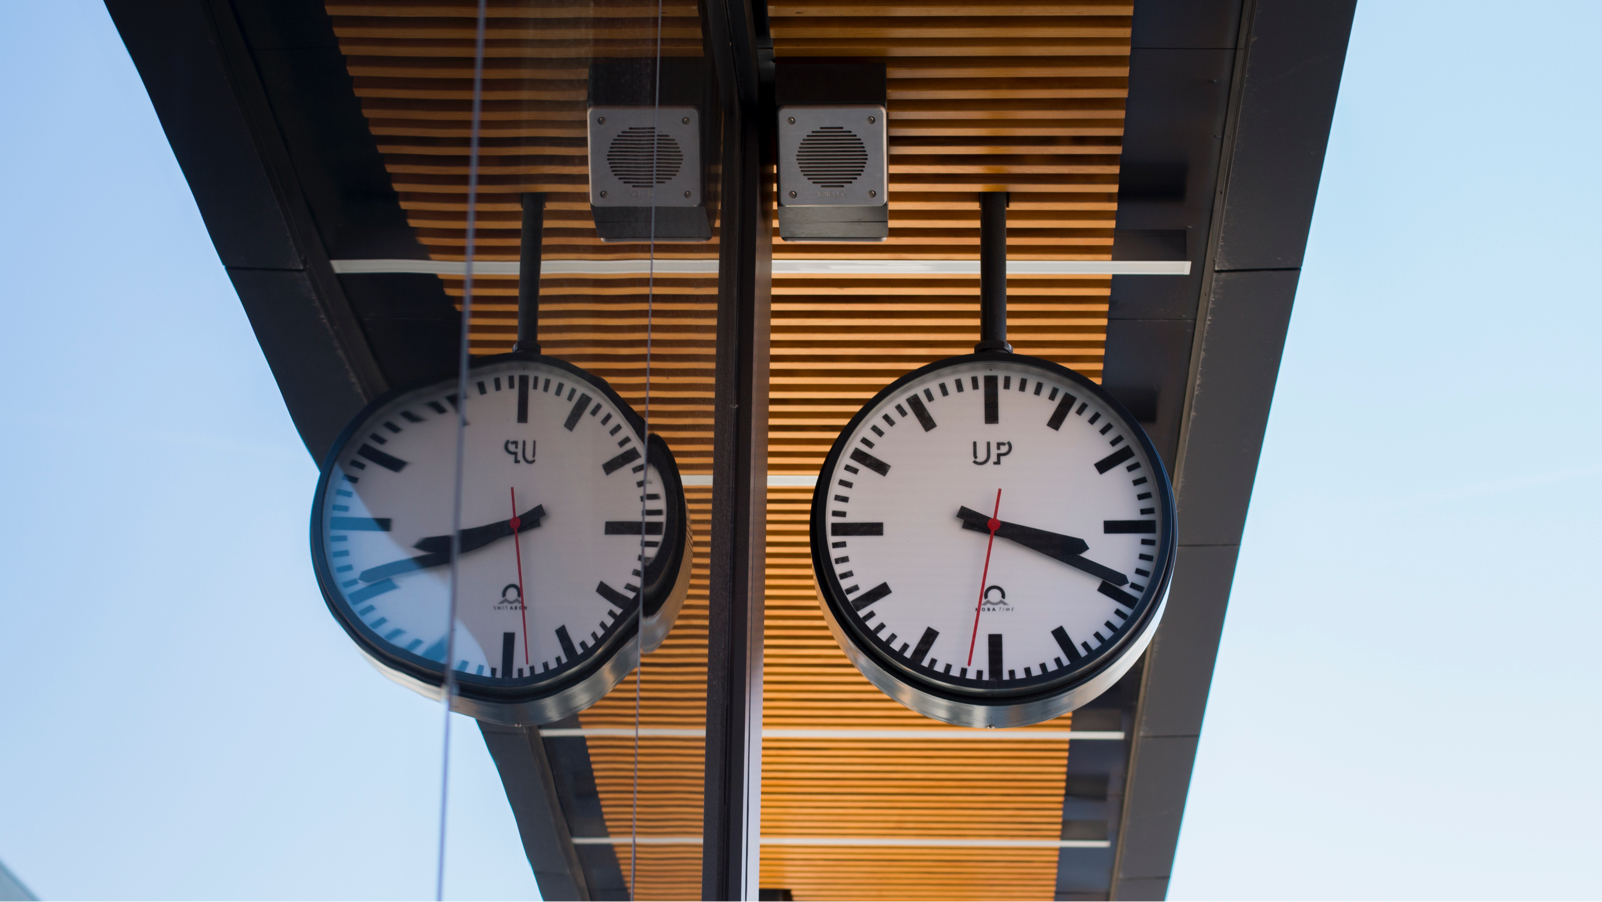 Clocks at a station